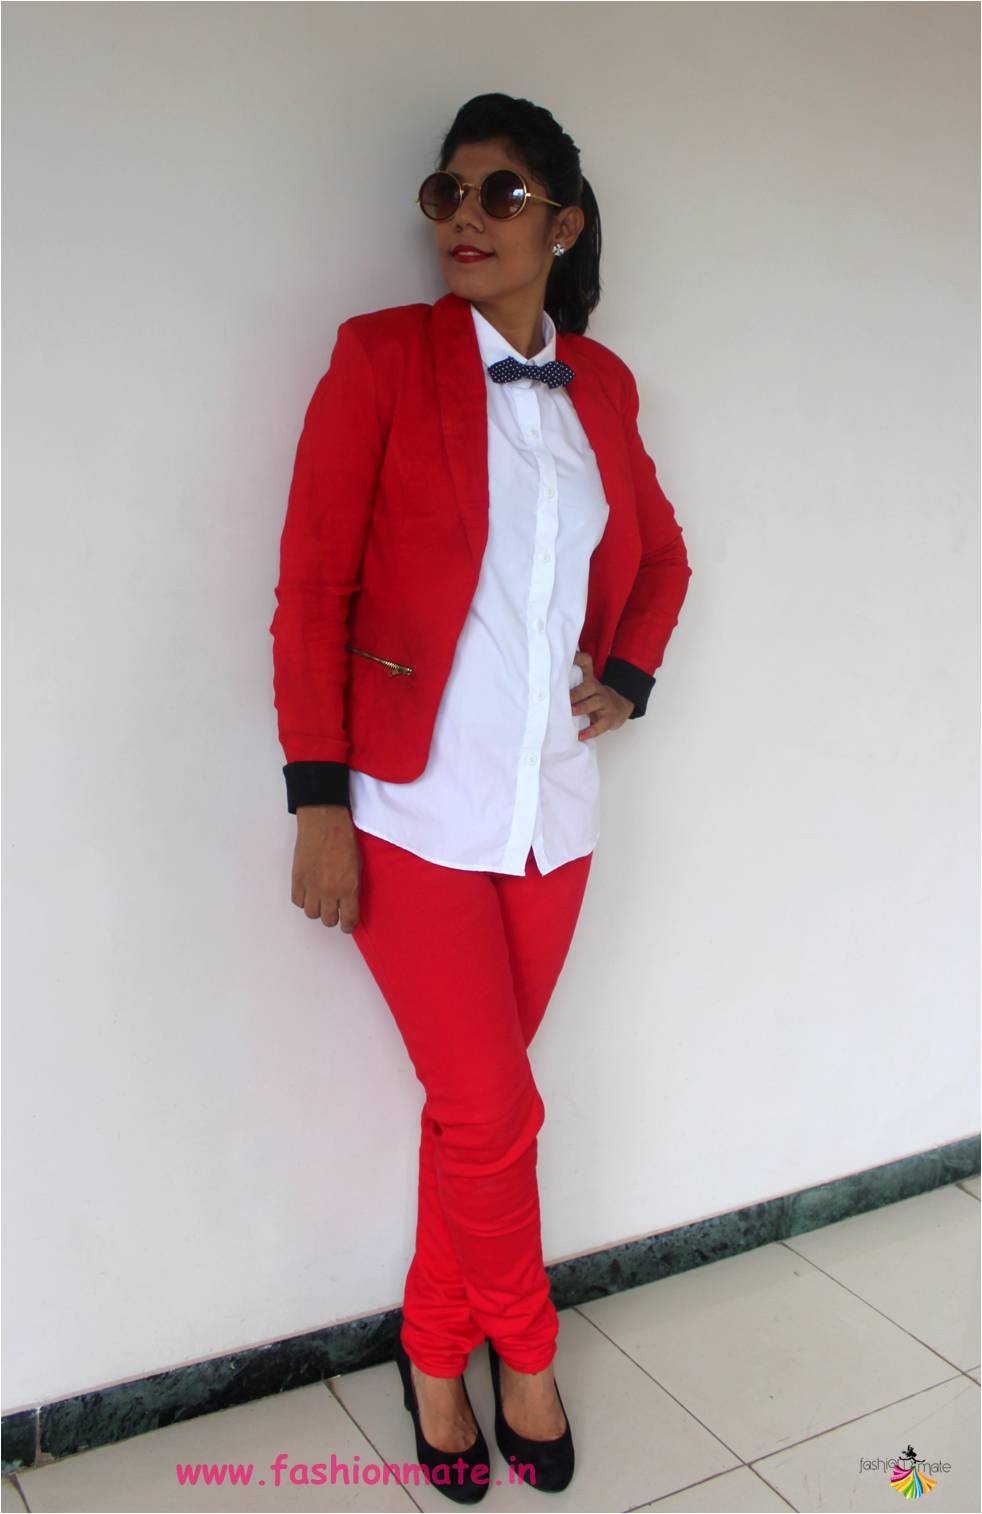 Red pant suit - Winter Fashion 2017 OOTD